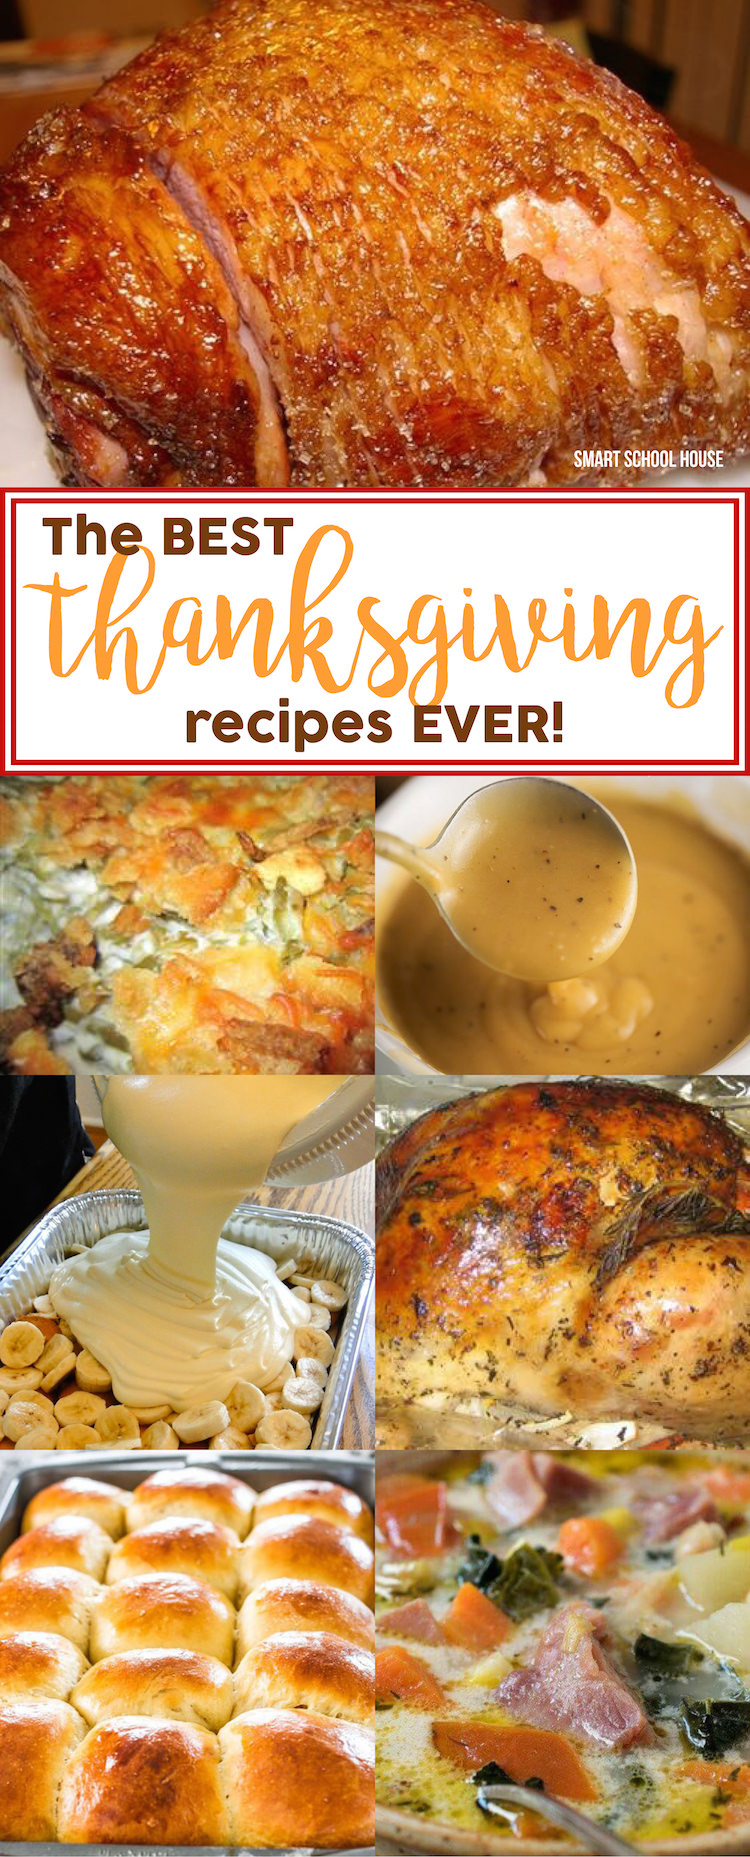 The BEST Thanksgiving Recipes EVER - turkey and stuffing, pumpkin pie, mashed potatoes, gravy, and tips to help you along the way.